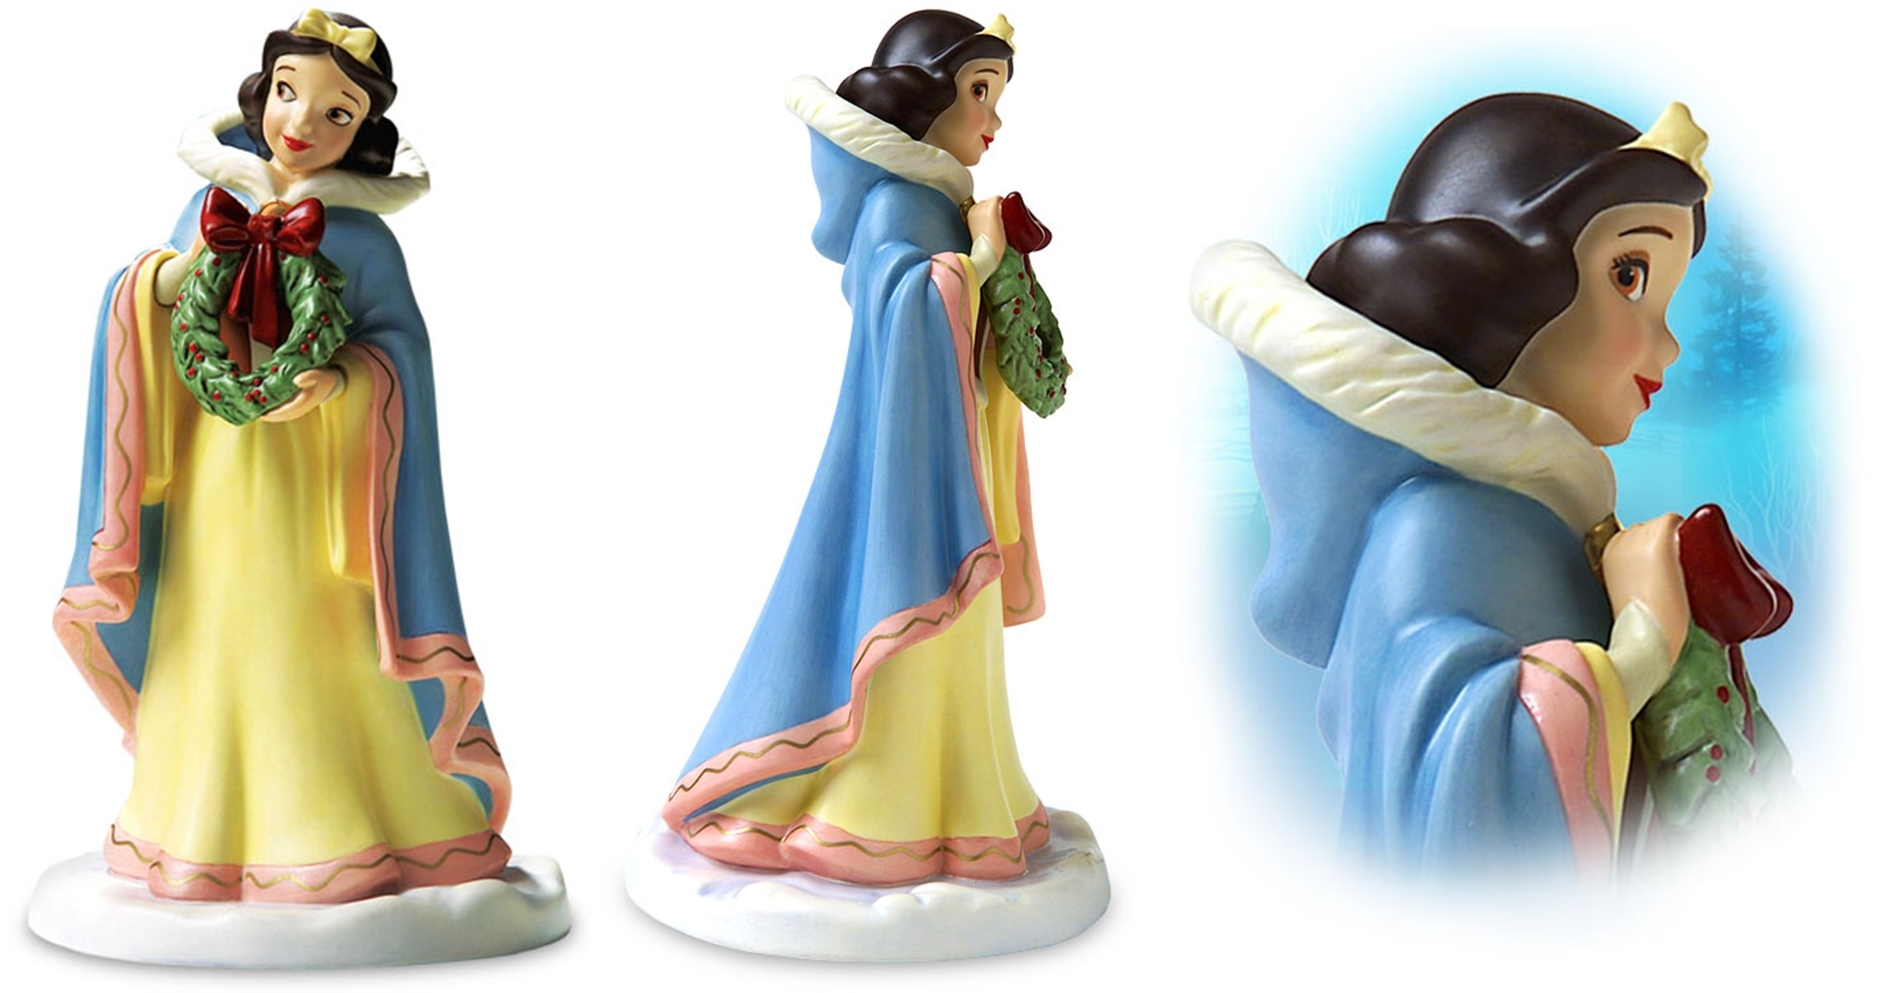 dating walt disney collectibles A website developed to help inform people of the disney limited edition dolls and other disney collectible walt disney company or any of disney limited.